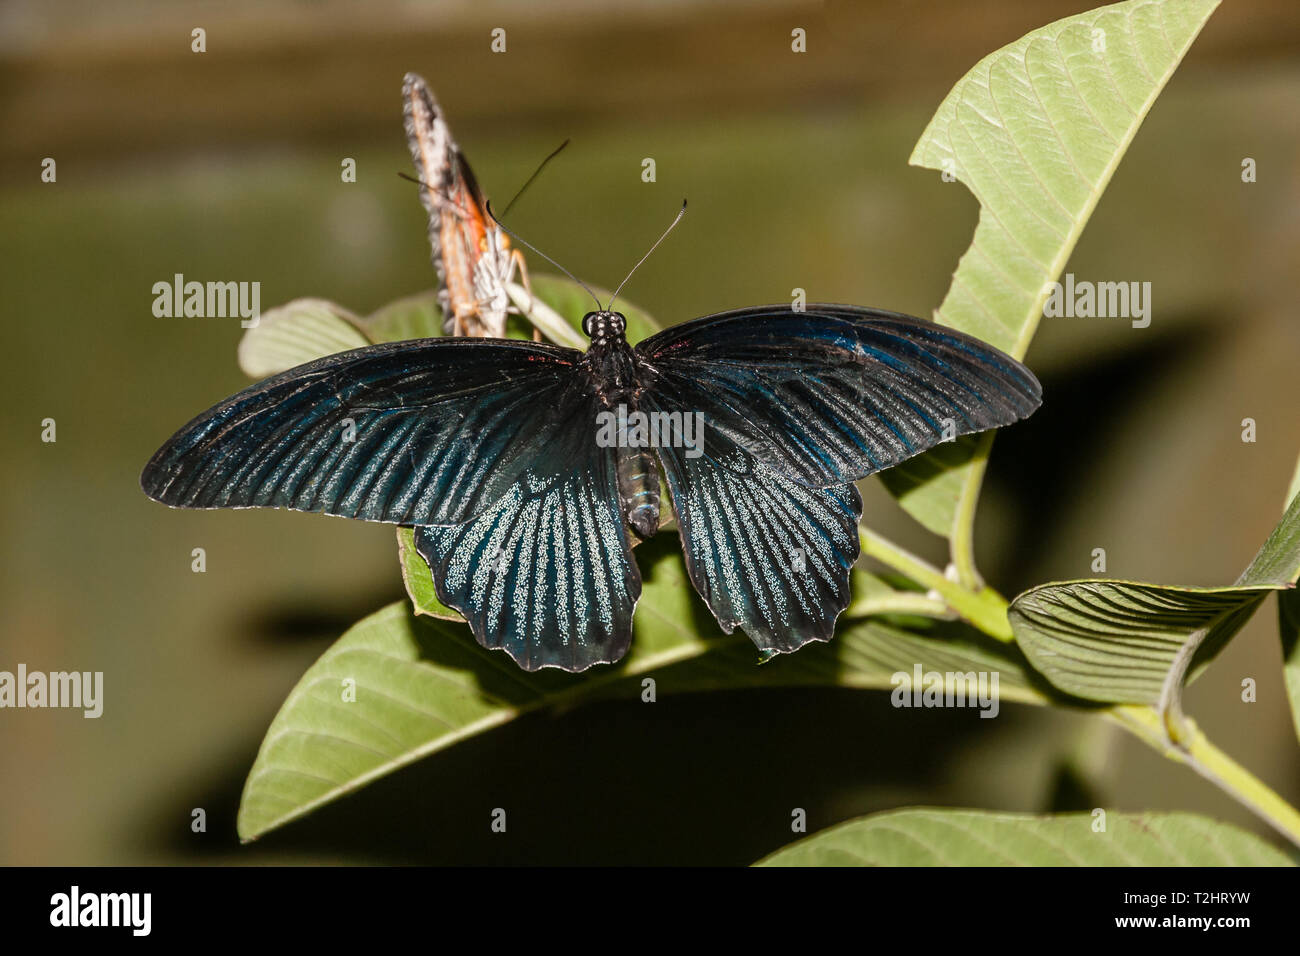 A tropical butterfly of family Papilionidae - Stock Image